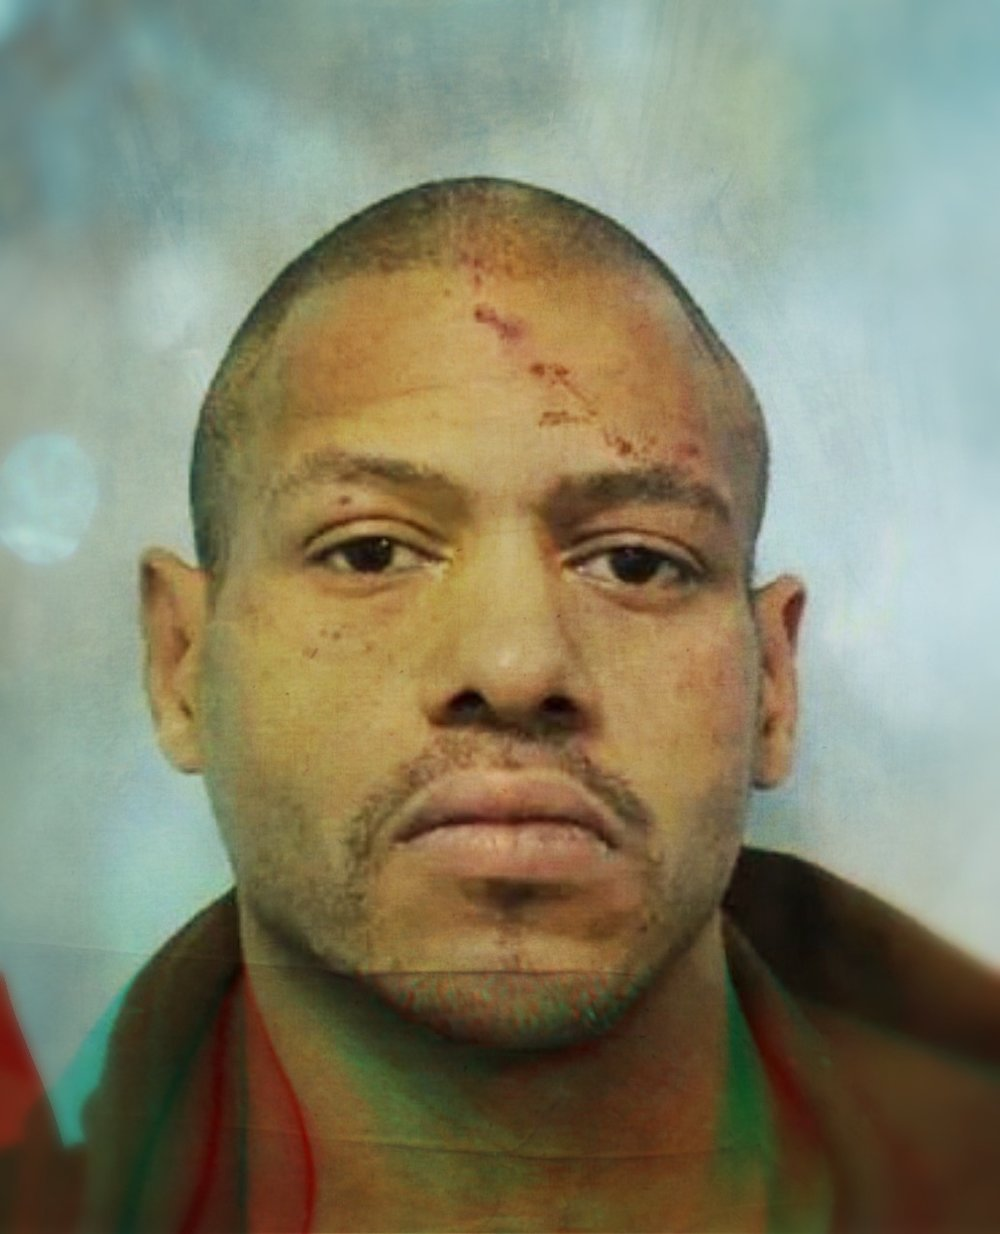 Weldon in his 2018 mugshot.